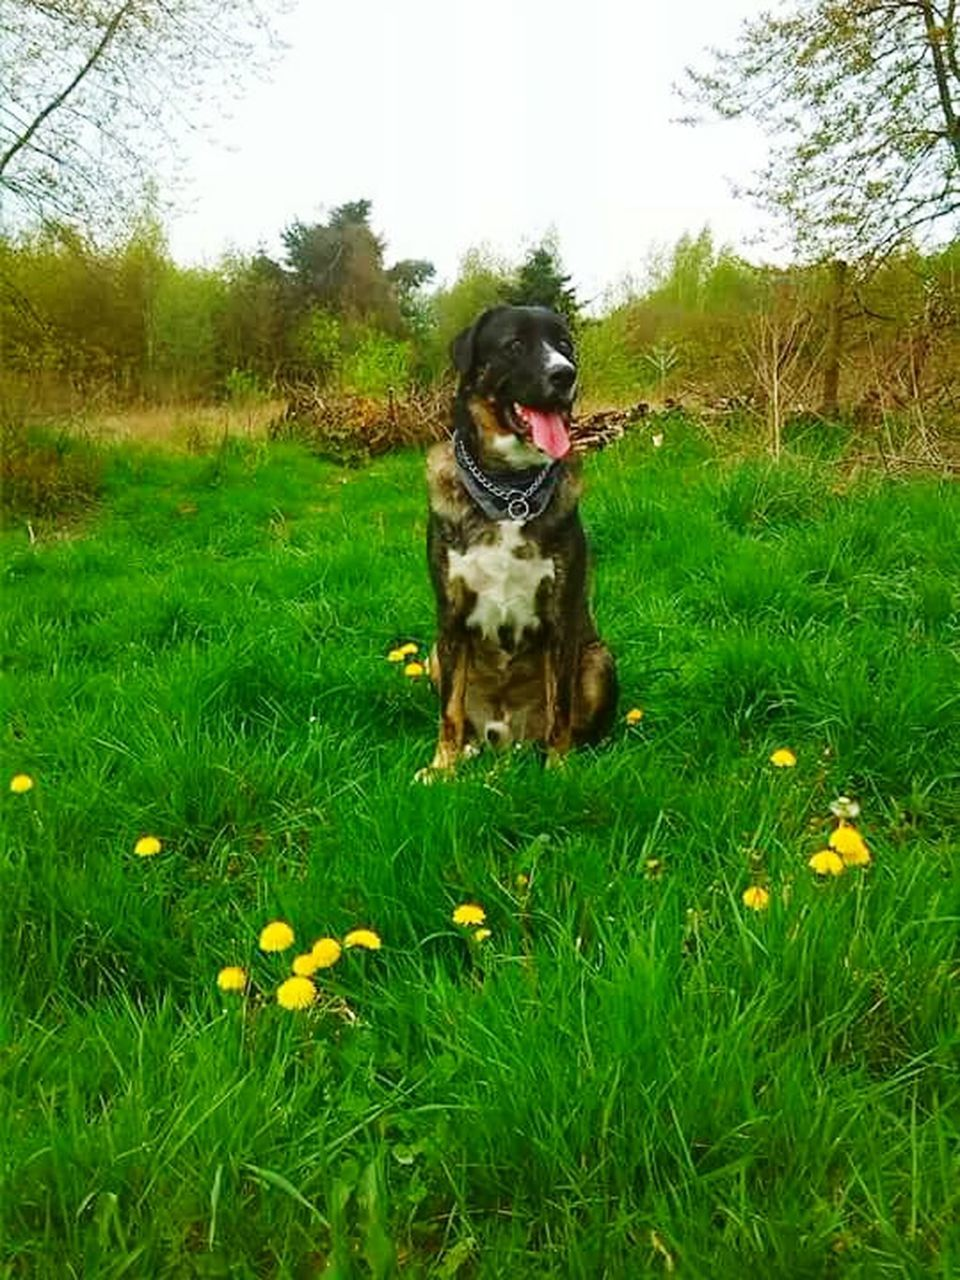 grass, dog, pets, domestic animals, one animal, animal themes, mammal, green color, growth, nature, outdoors, day, no people, tree, field, flower, sitting, beauty in nature, sky